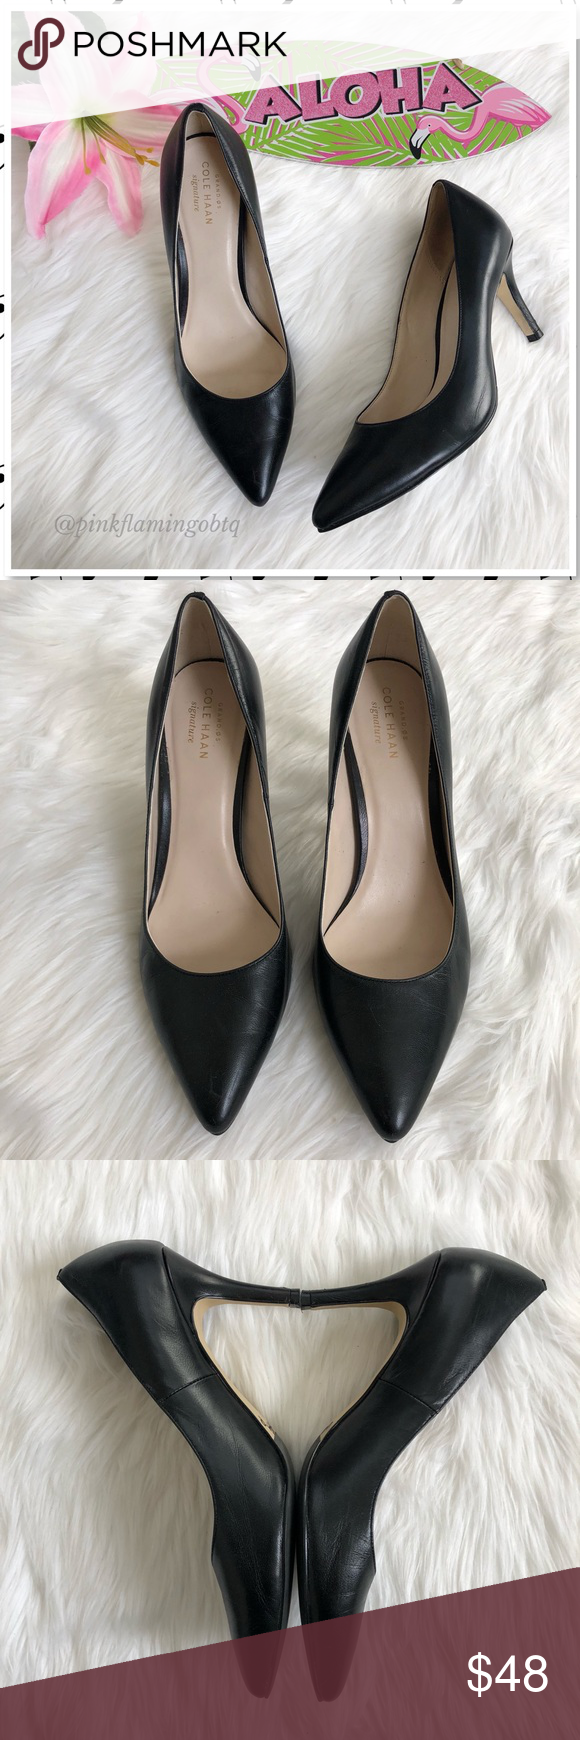 8c3cef8eff8 Cole Haan Grand OS Signature Black Leather Pump Cole Haan Grand OS ...